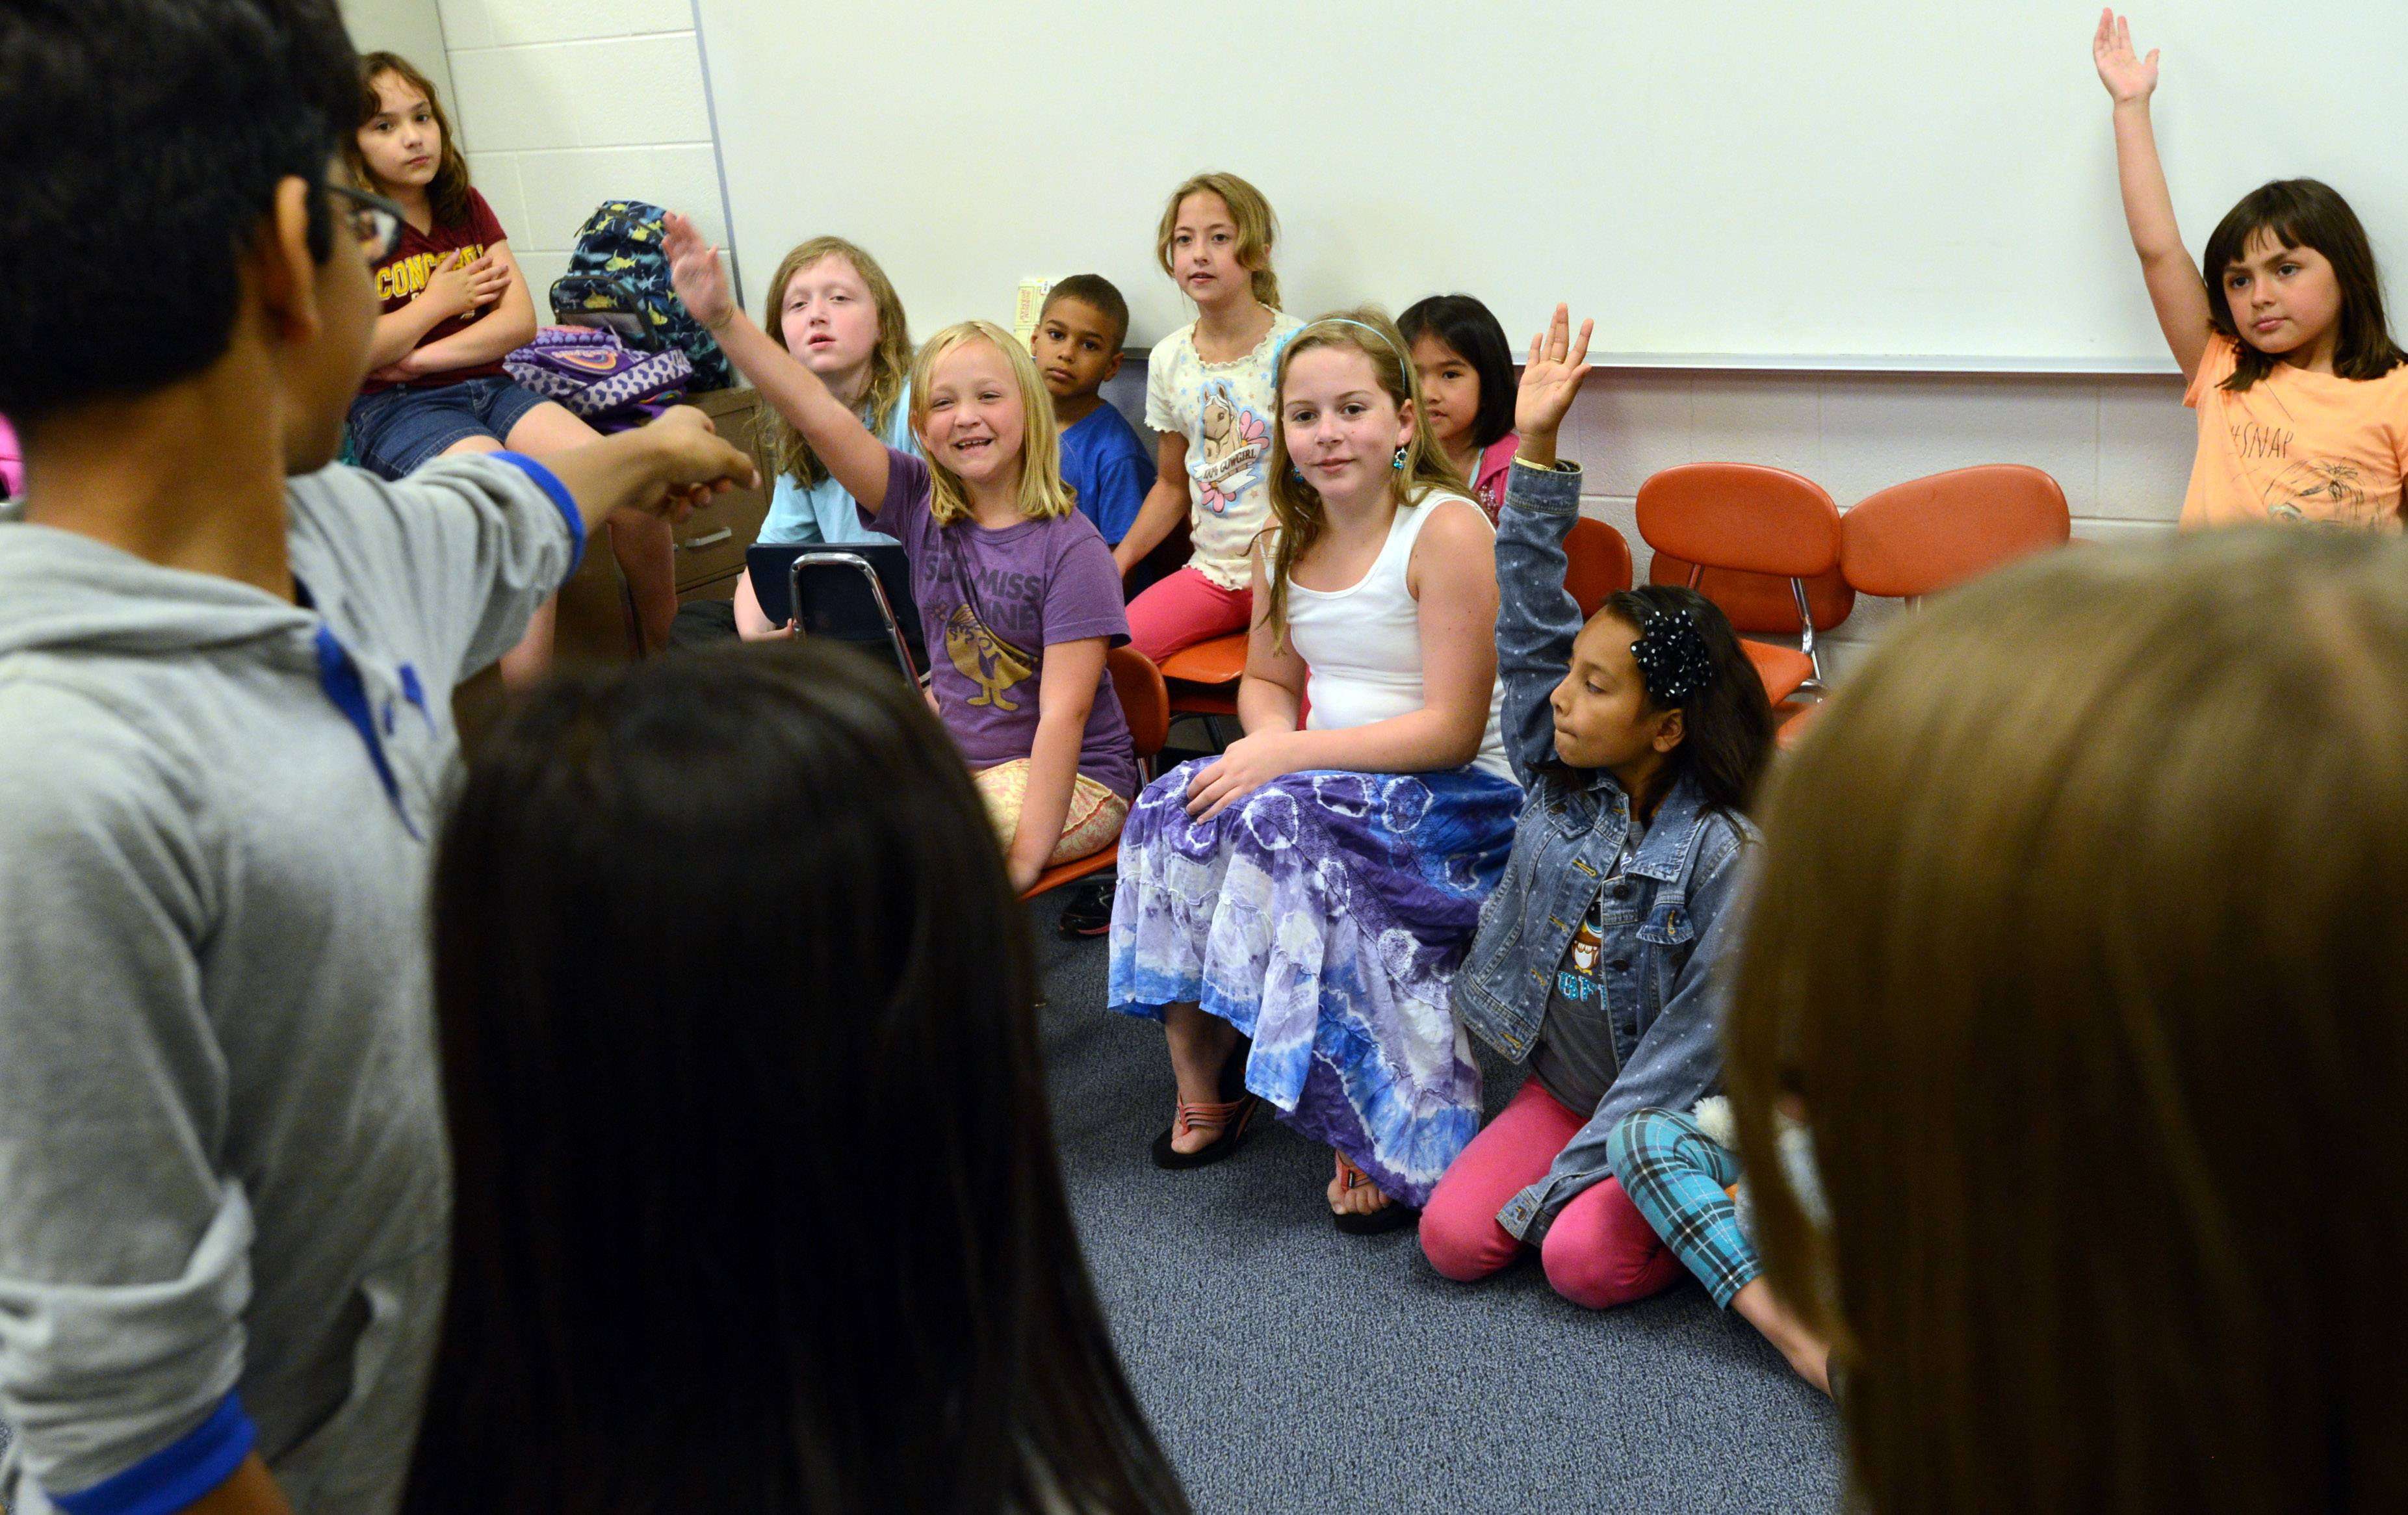 Students participate in theater-related activities Wednesday during the Summer Enrichment Program at Mechanics Grove School in Mundelein.